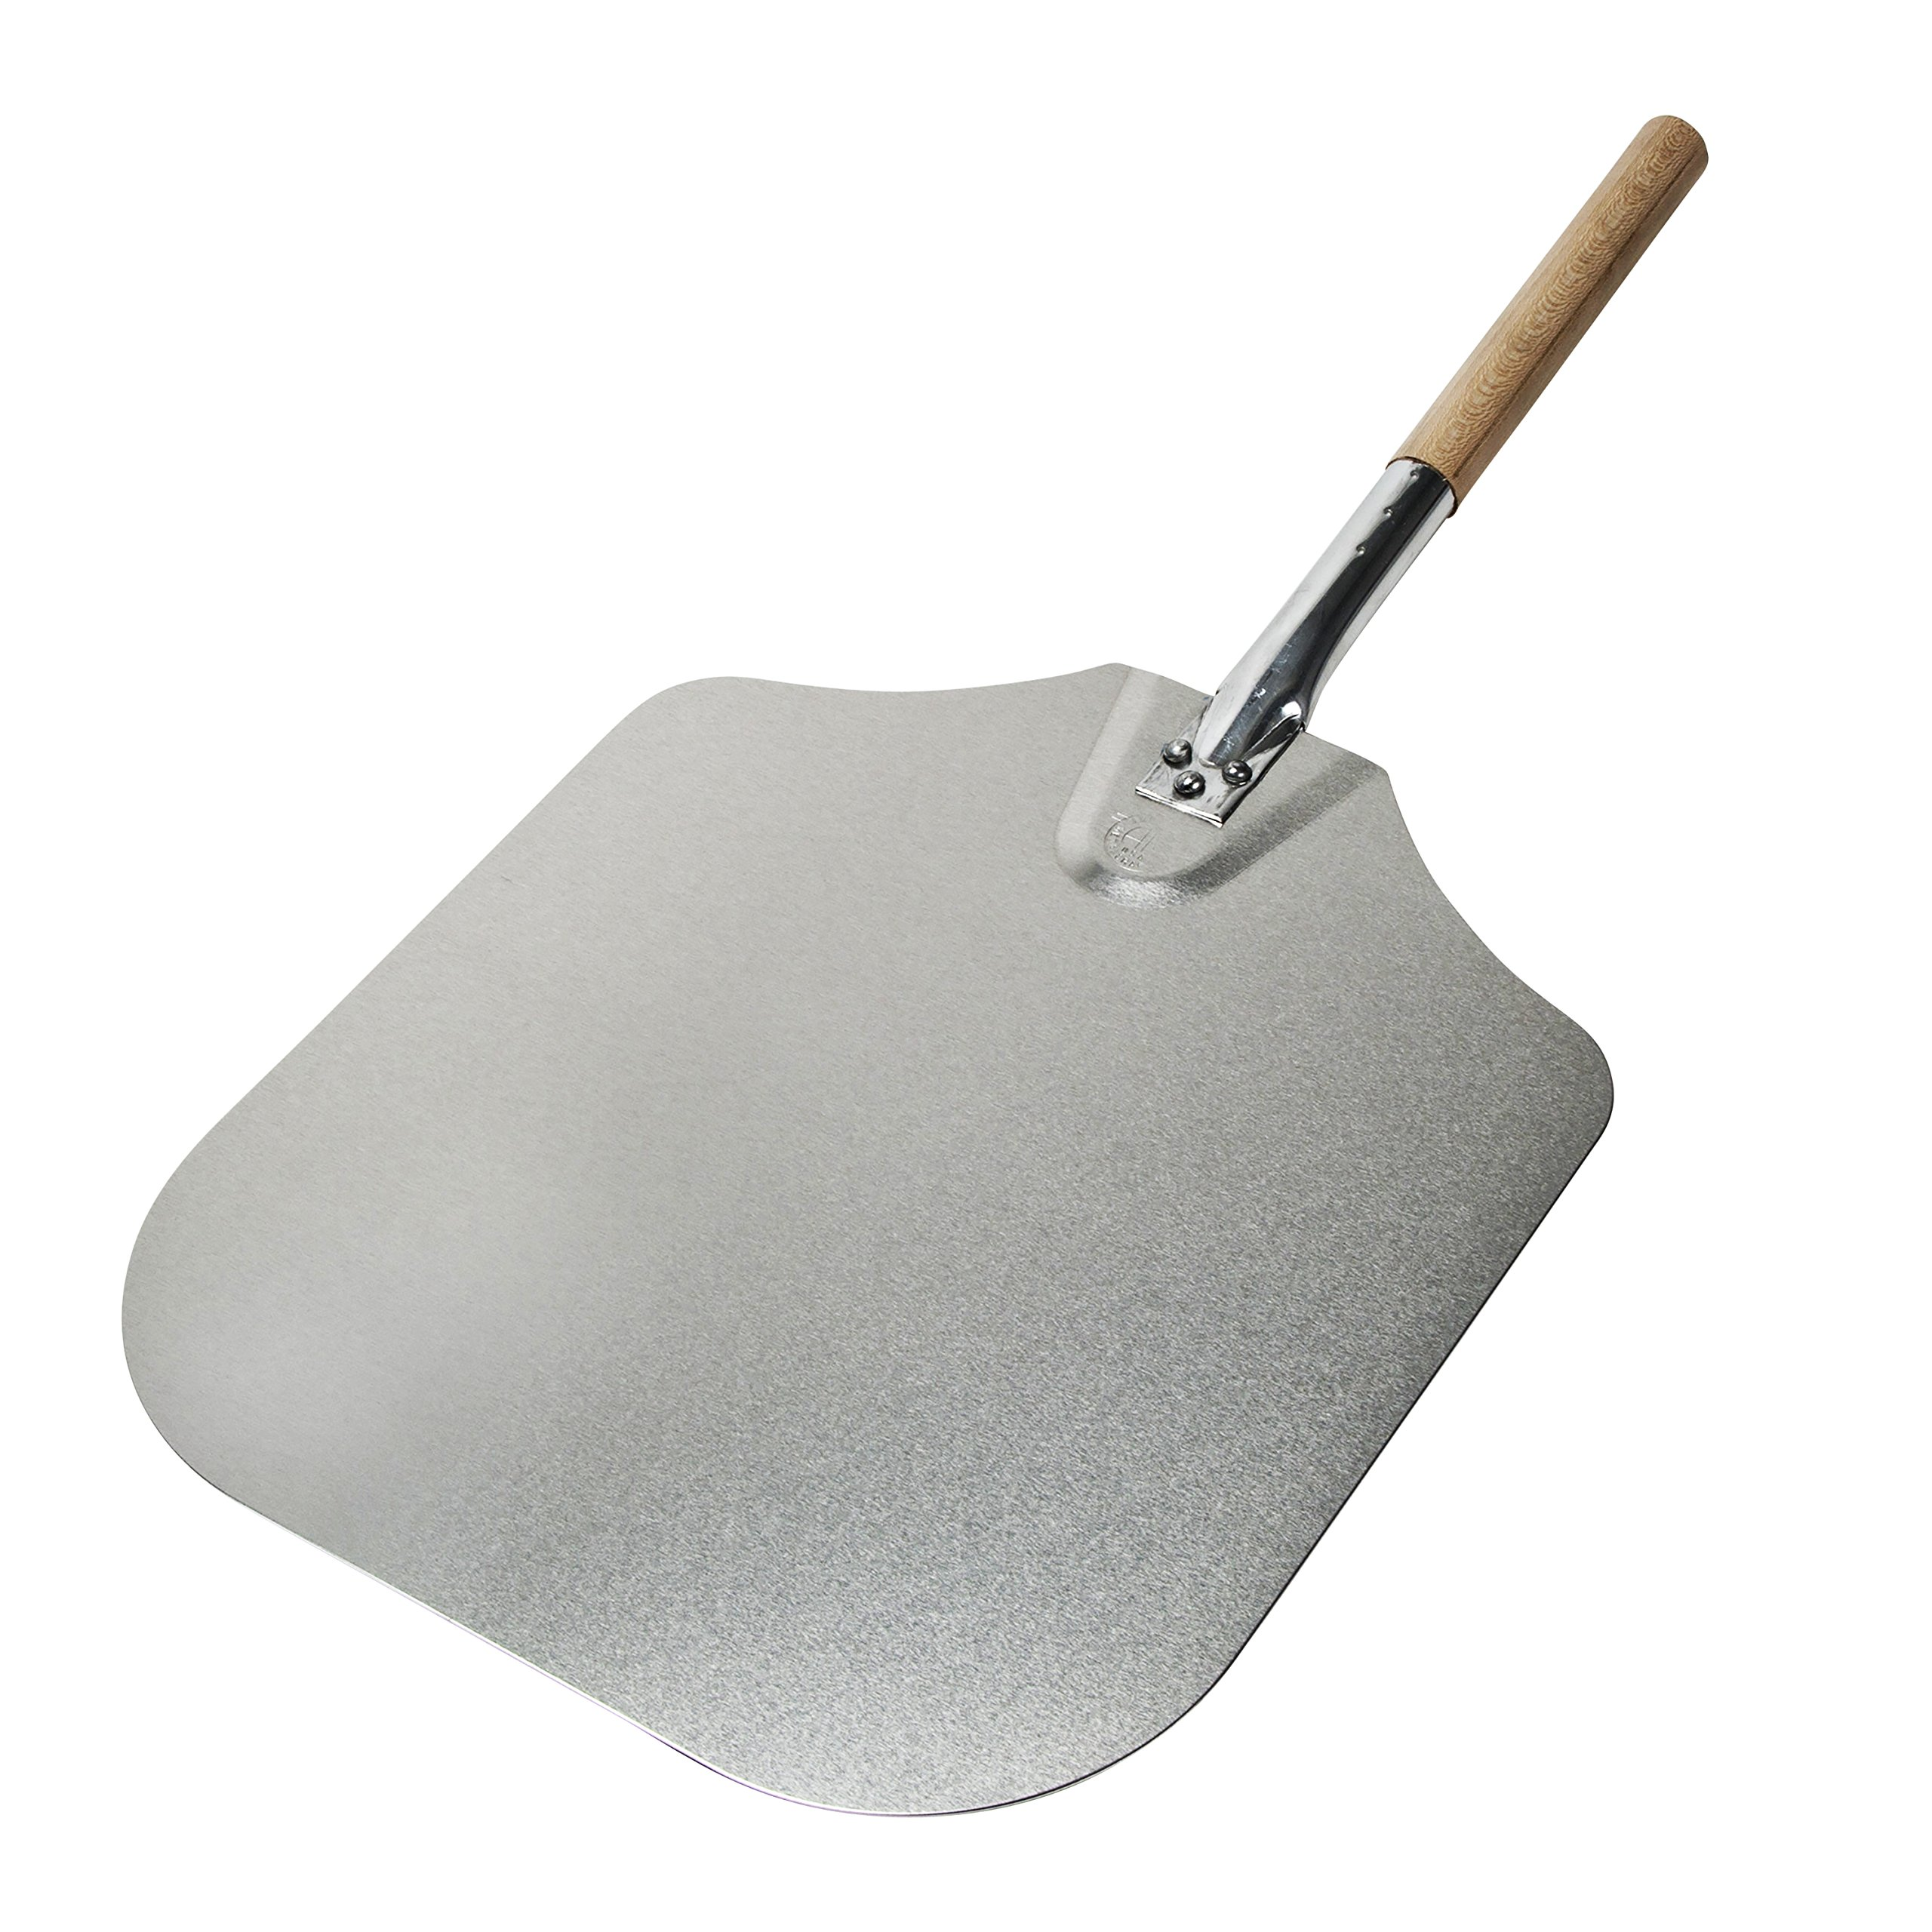 Kitchen Supply 14-Inch x 16-Inch Aluminum Pizza Peel with Wood Handle by Honey-Can-Do (Image #7)